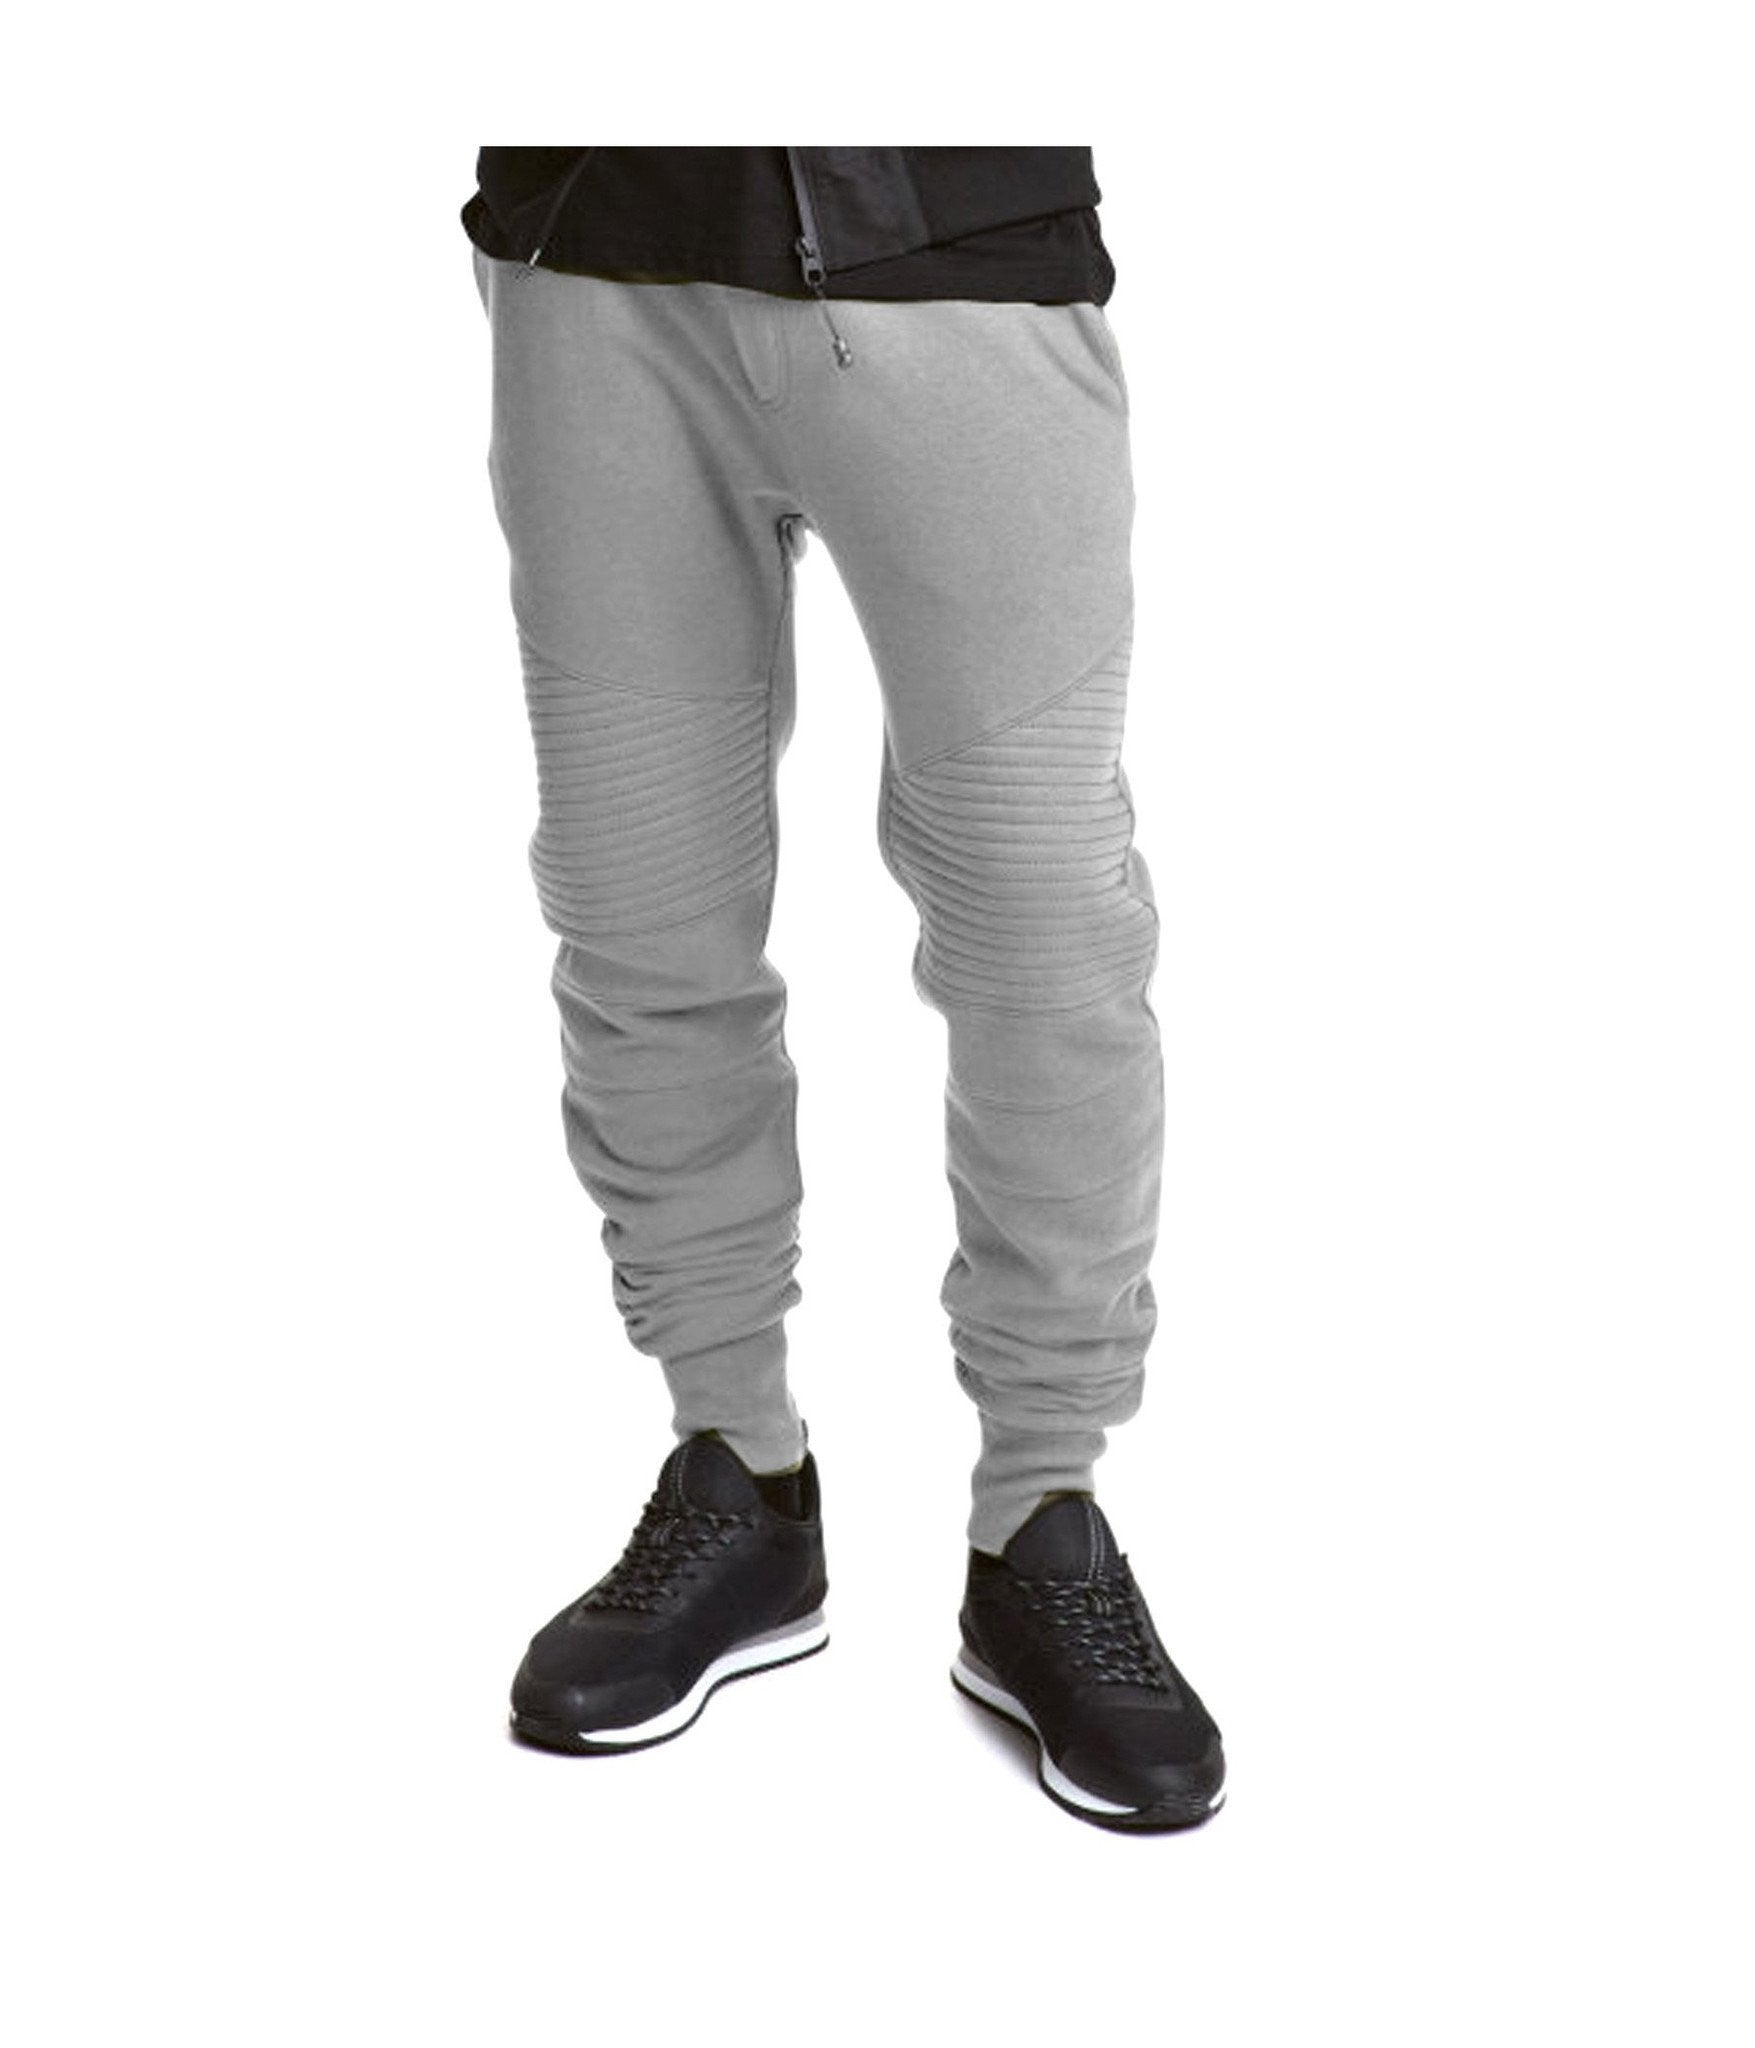 NYSOM - Biker Style Jogger Sweatpants